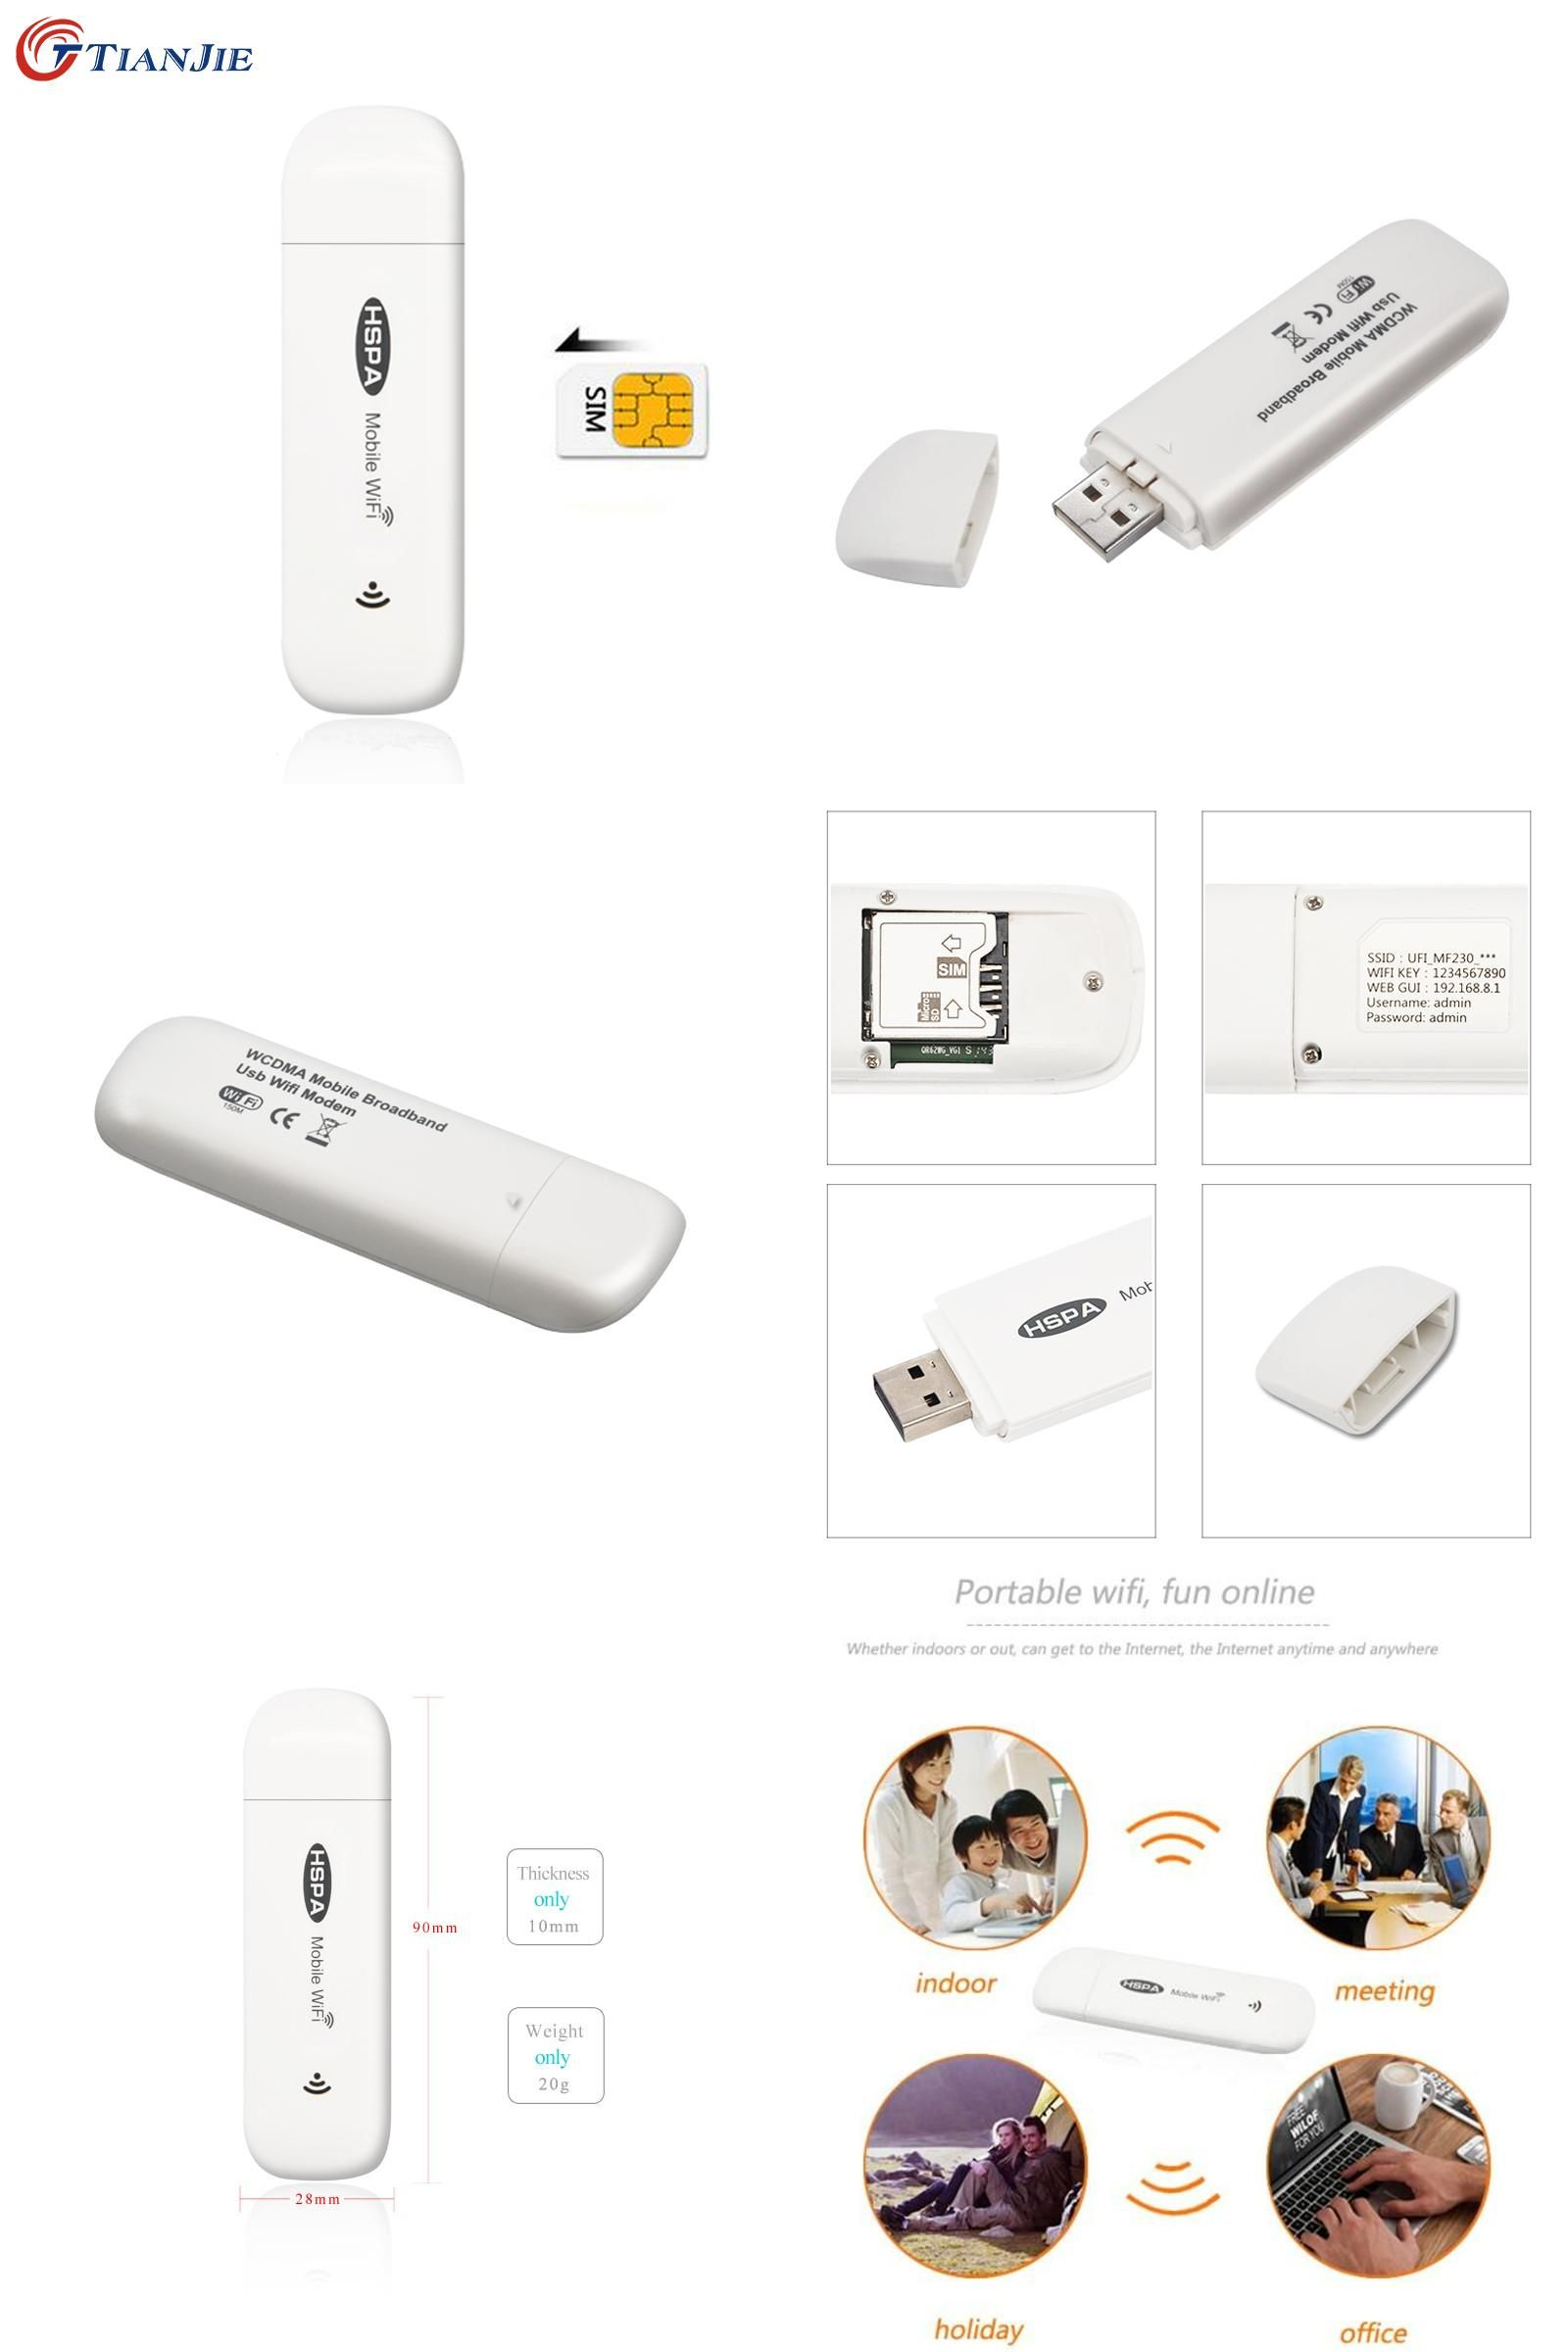 Visit to buy 3g wifi router mifi dongle mini wireless